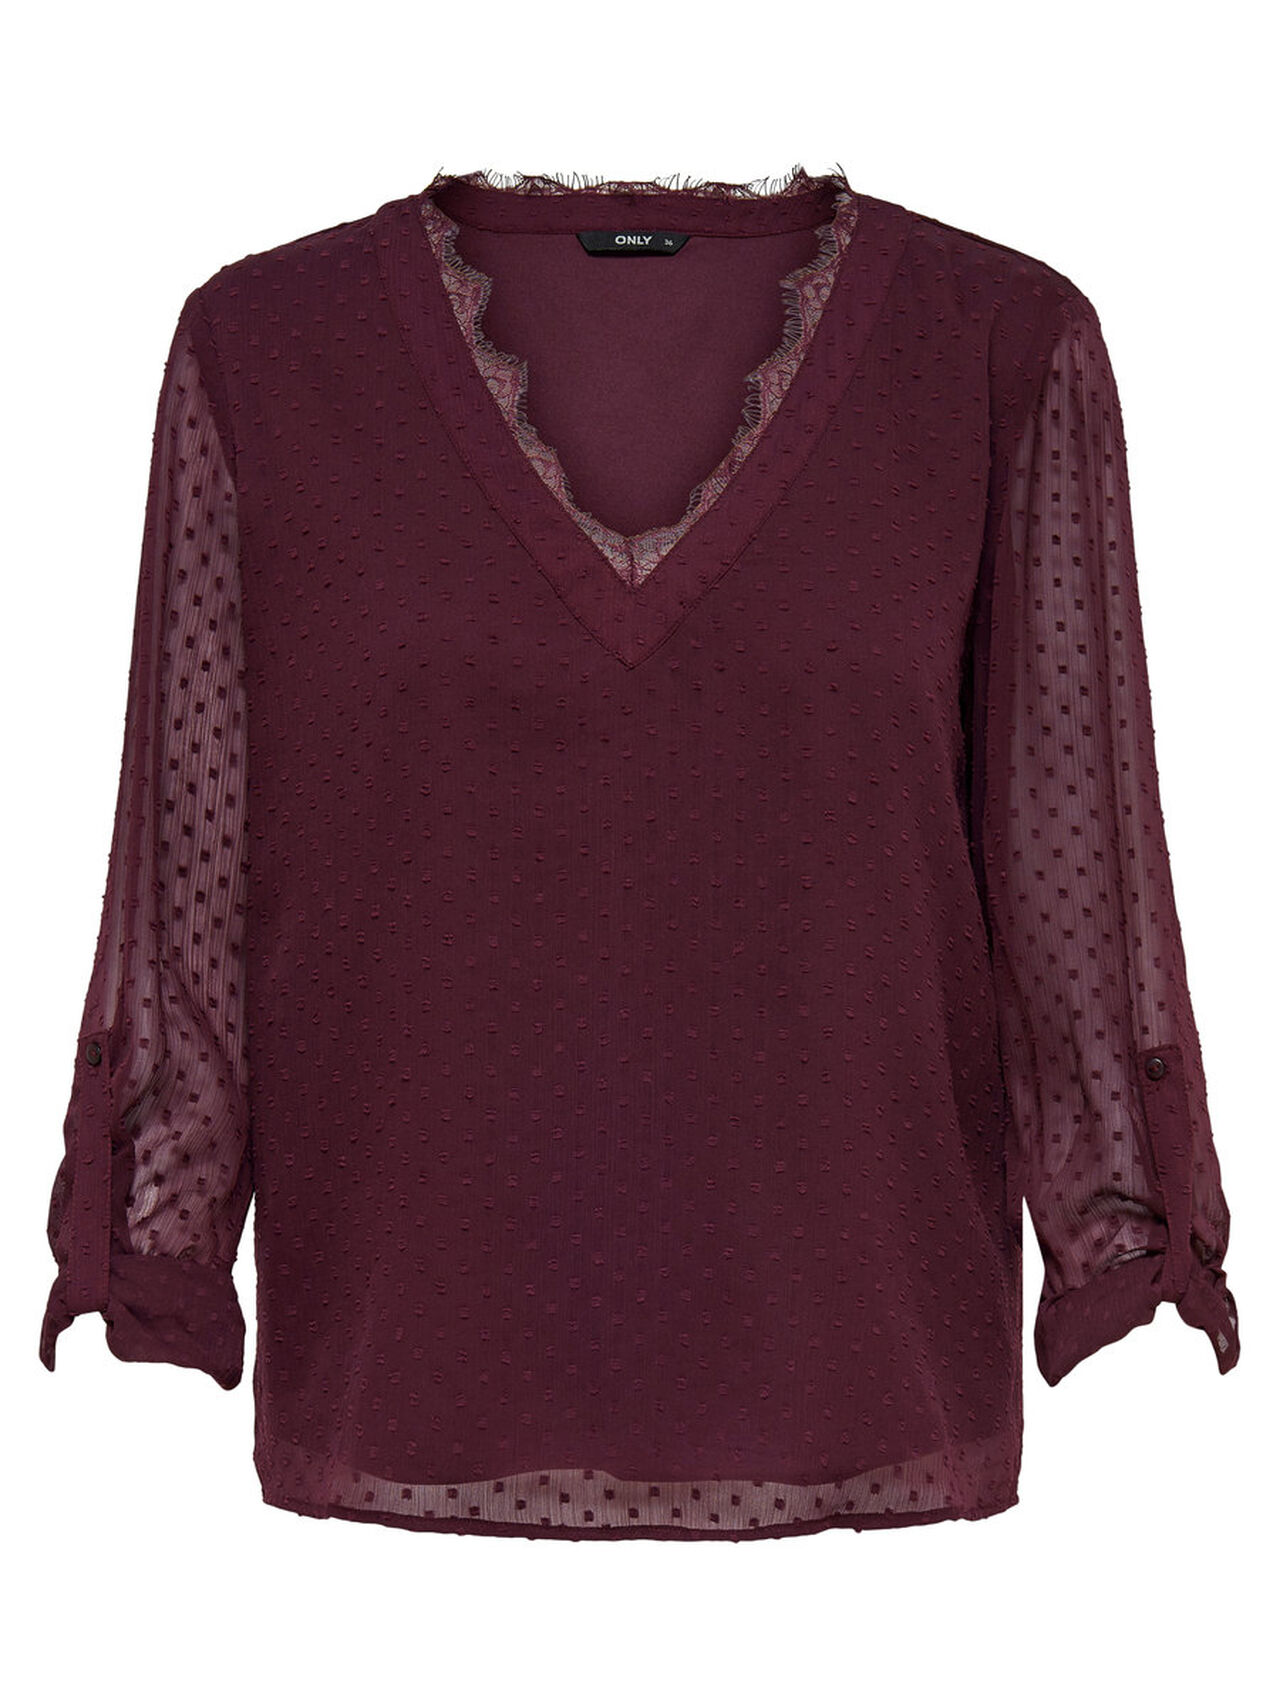 ONLY Loose Long Sleeved Top Women Red